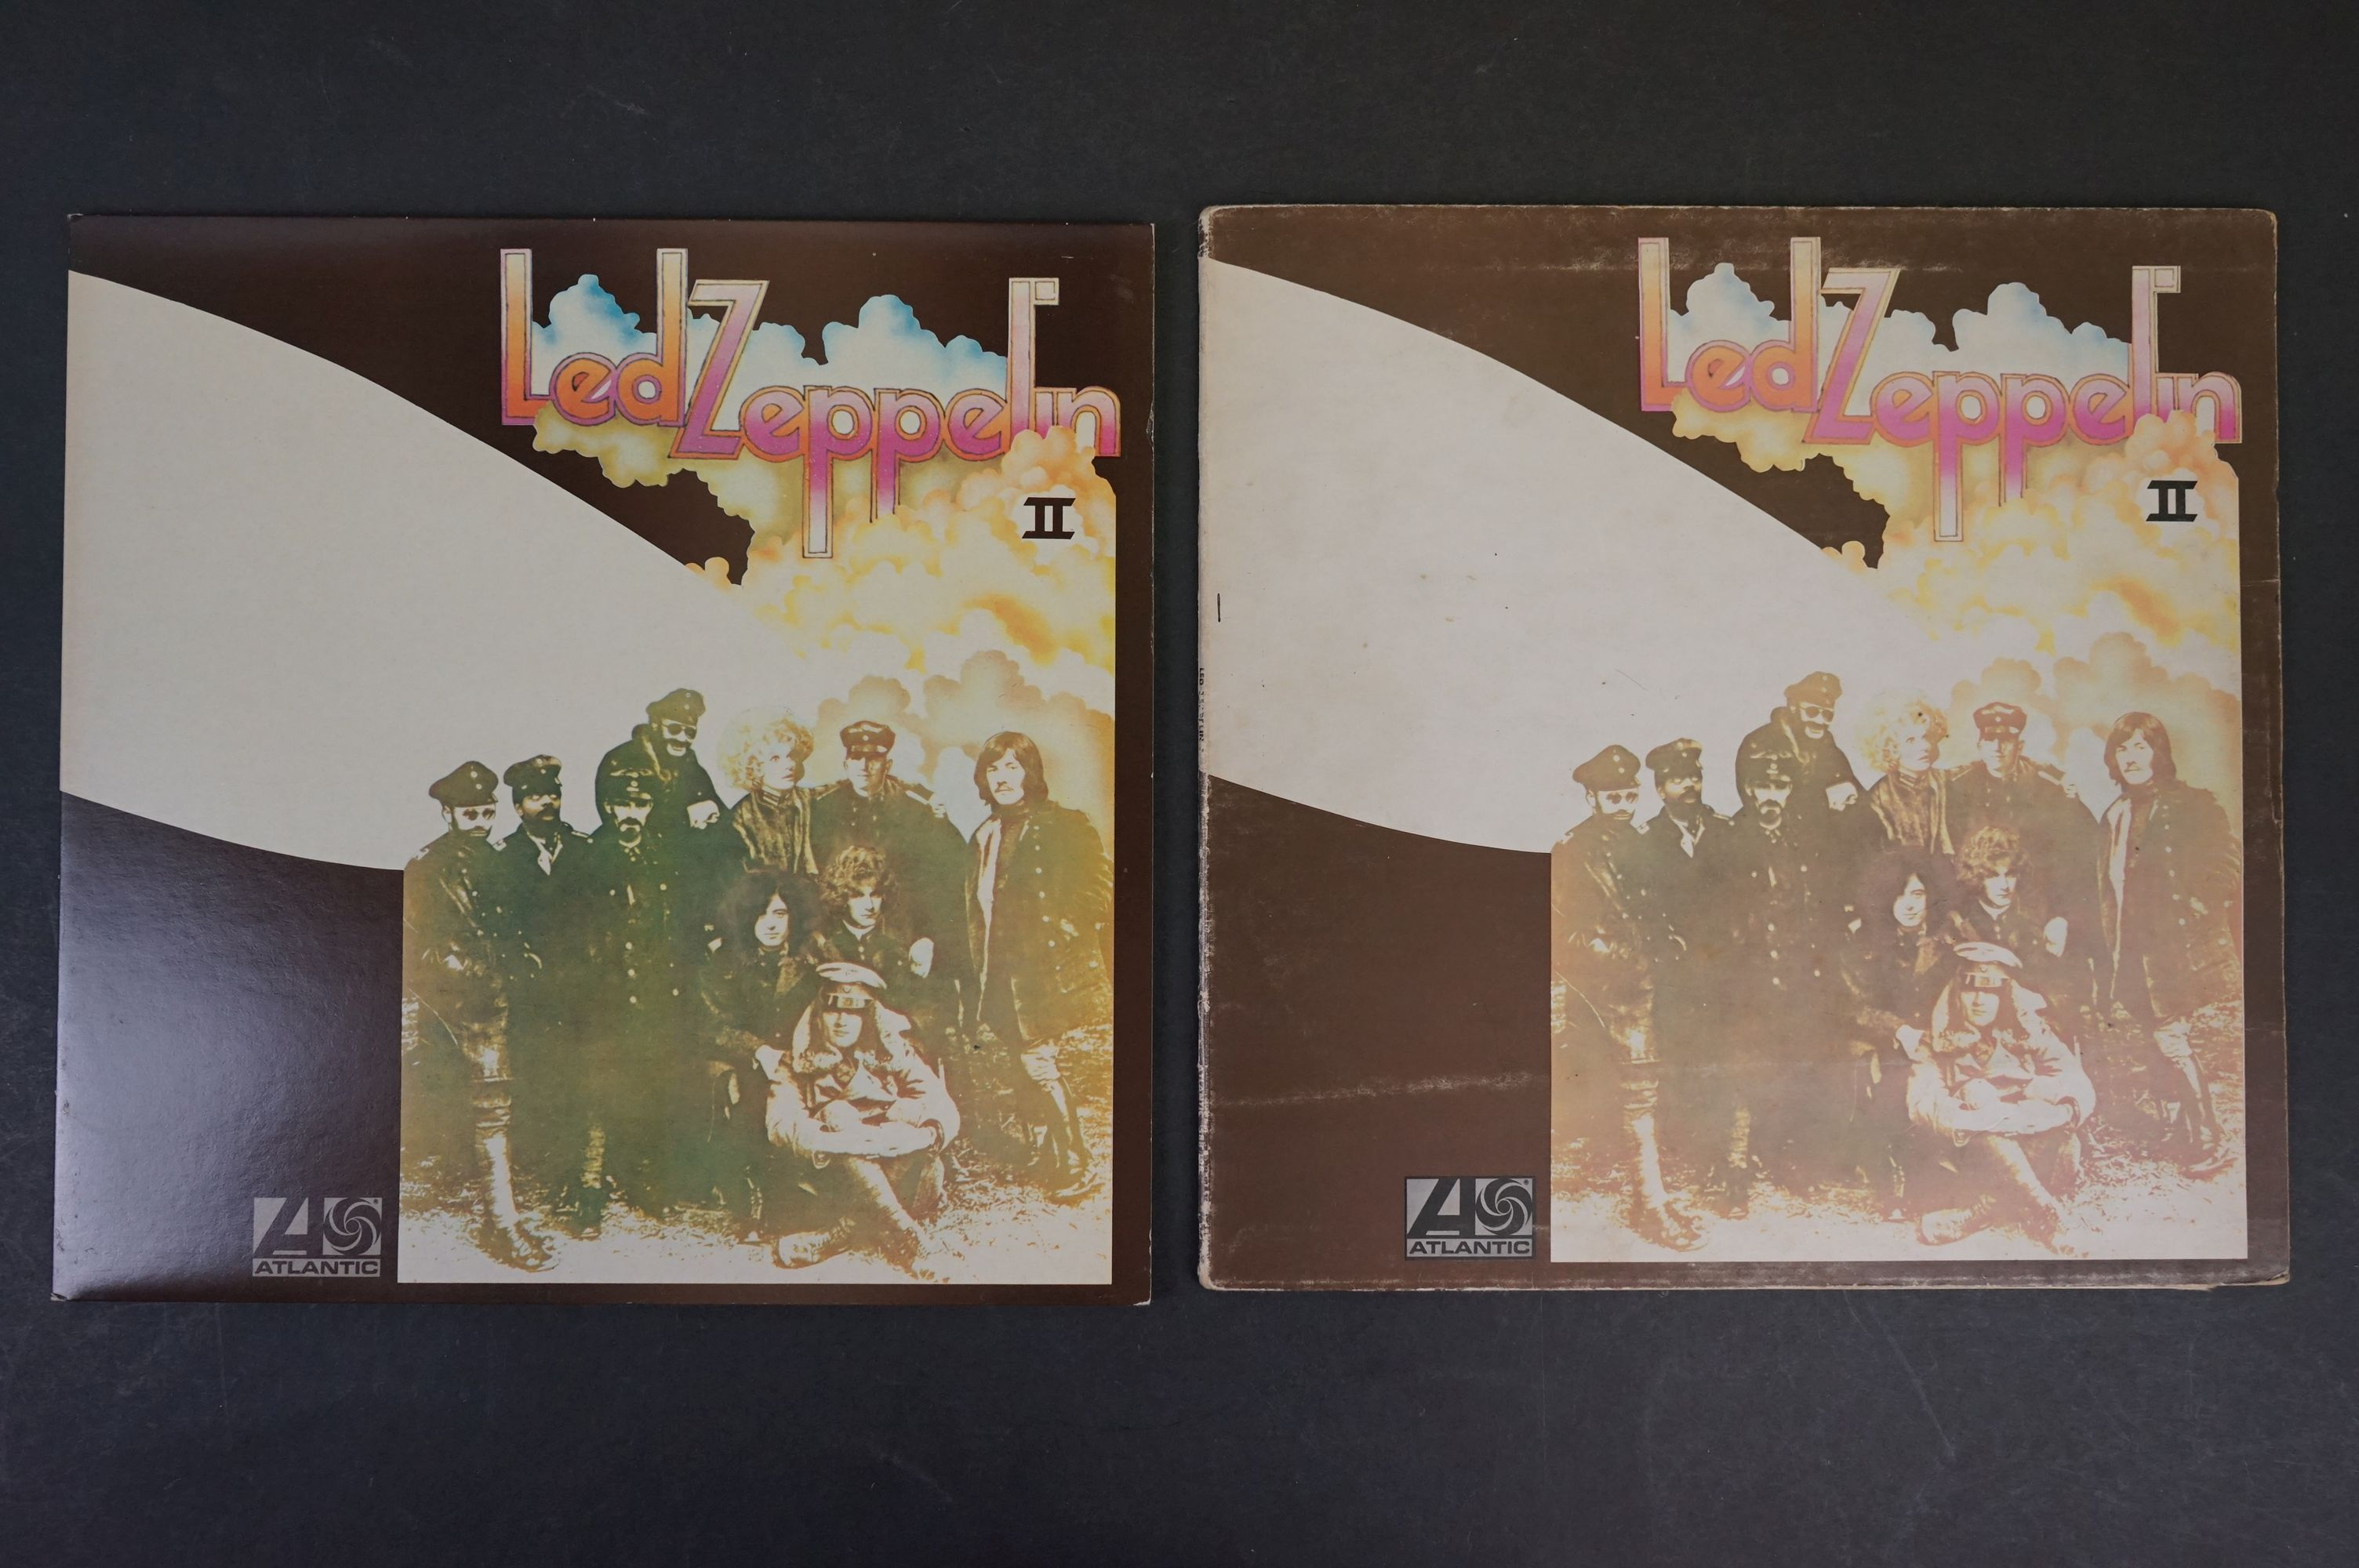 Vinyl - Six Led Zeppelin LPs to include In Through the Outdoor (cover D) SSK59410, Coda 790051, 2 - Image 2 of 17